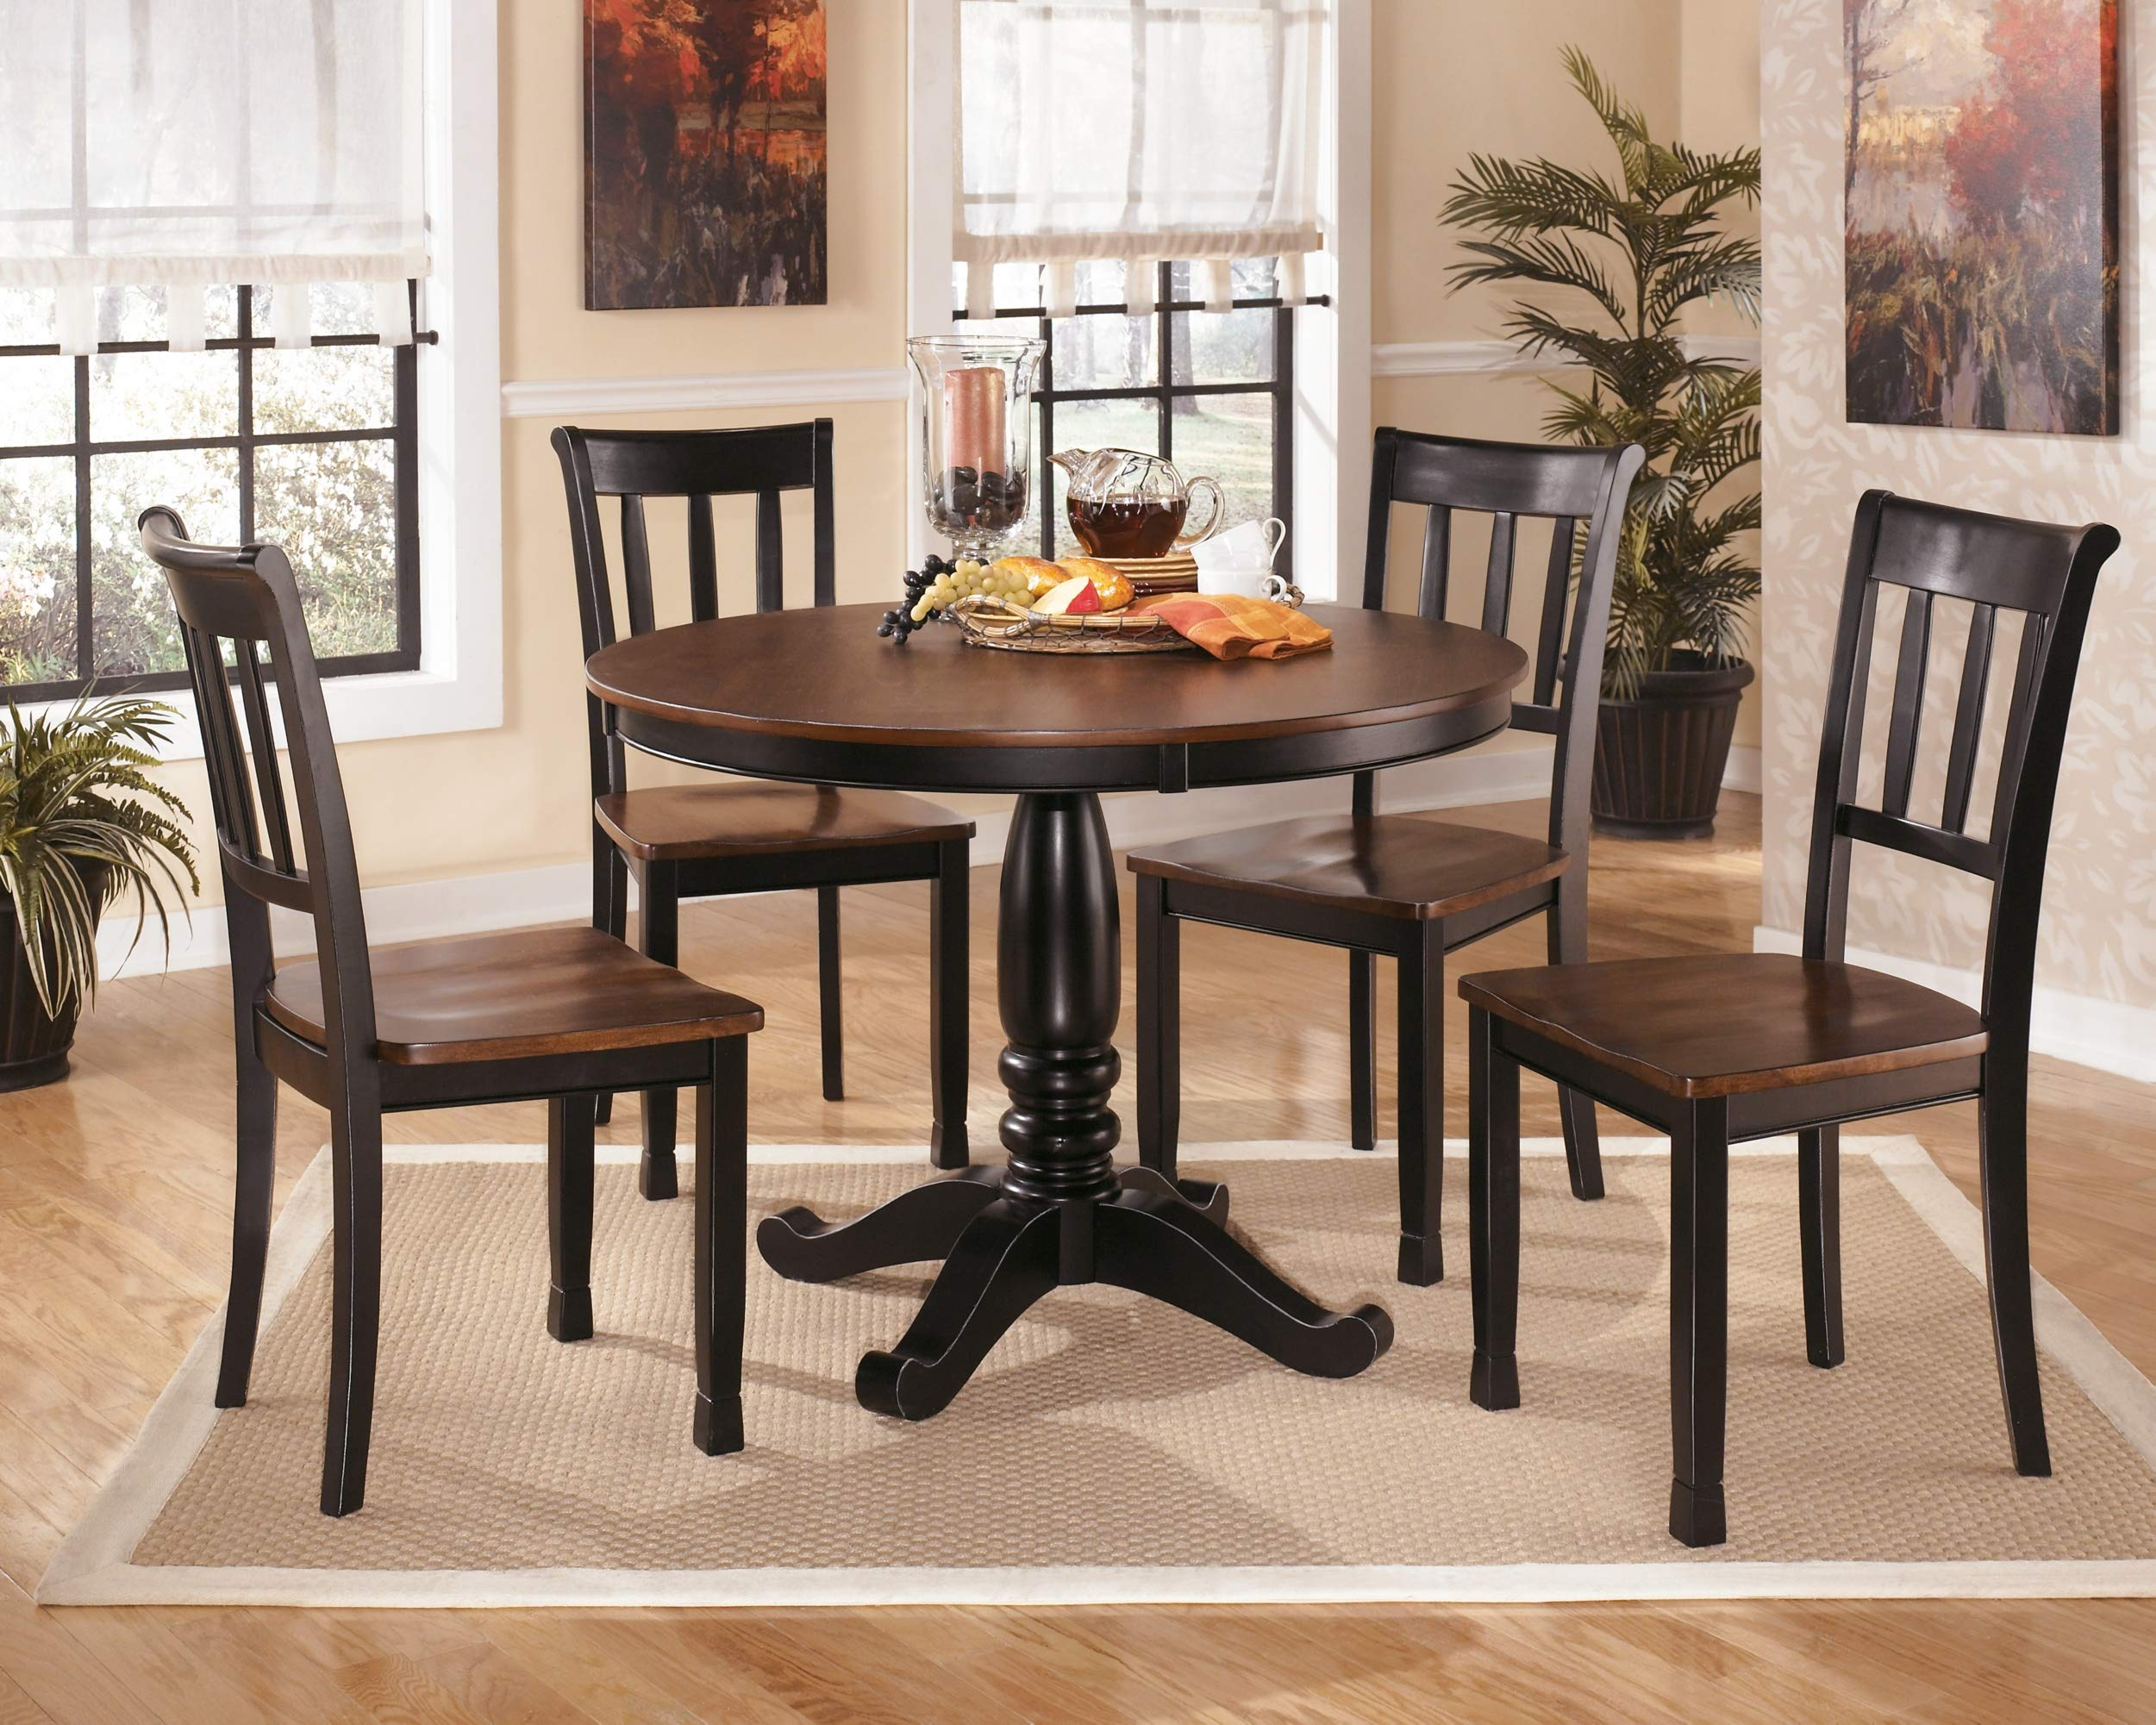 Ashley Furniture Signature Design - Owingsville Dining Room Side Chair - Latter Back - Set of 2 - Black-Brown by Signature Design by Ashley (Image #9)